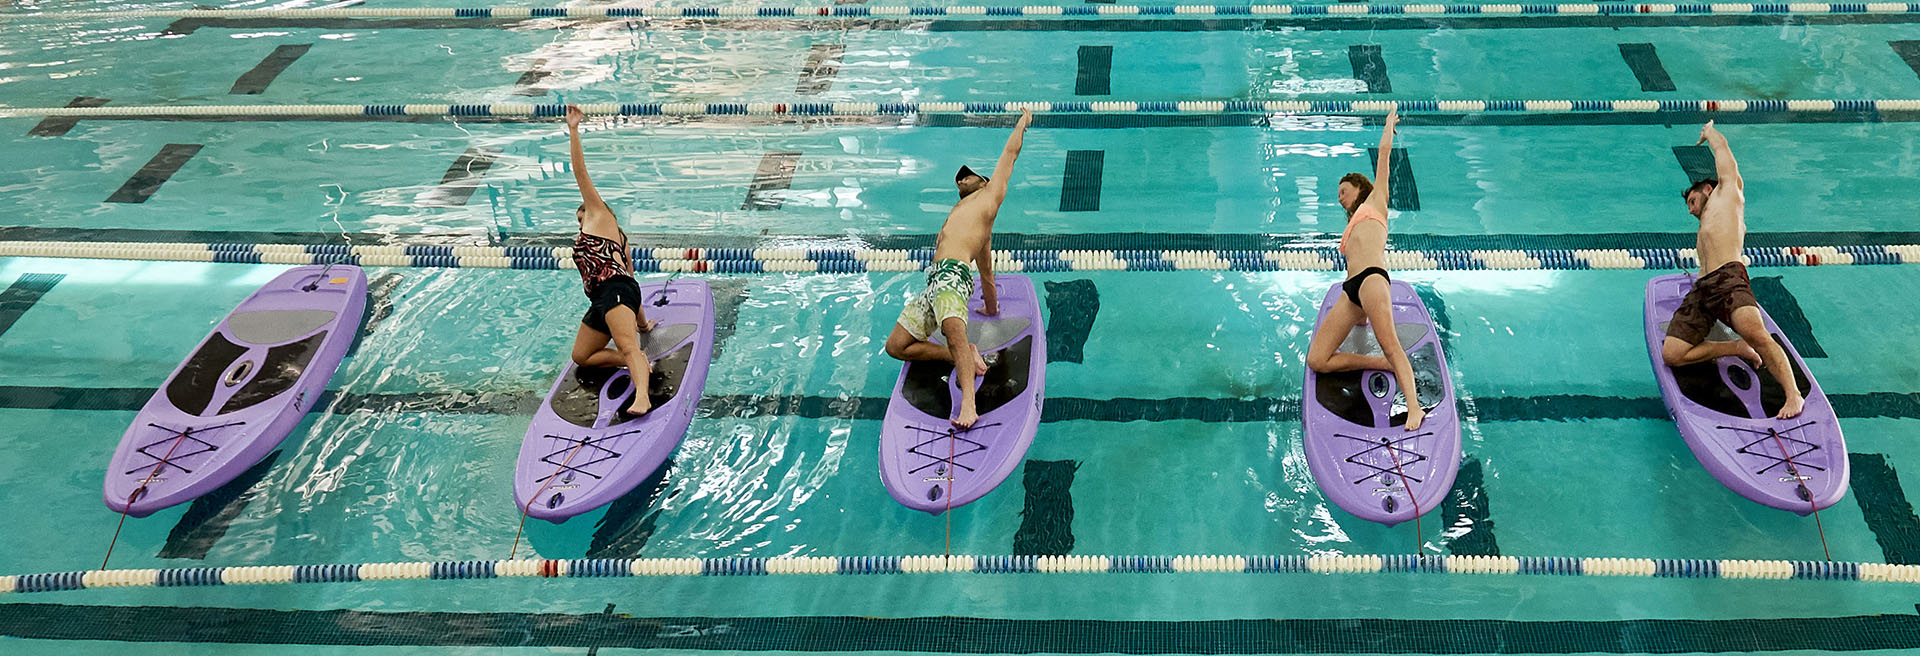 Water yoga on kayaks in the UWF indoor pool